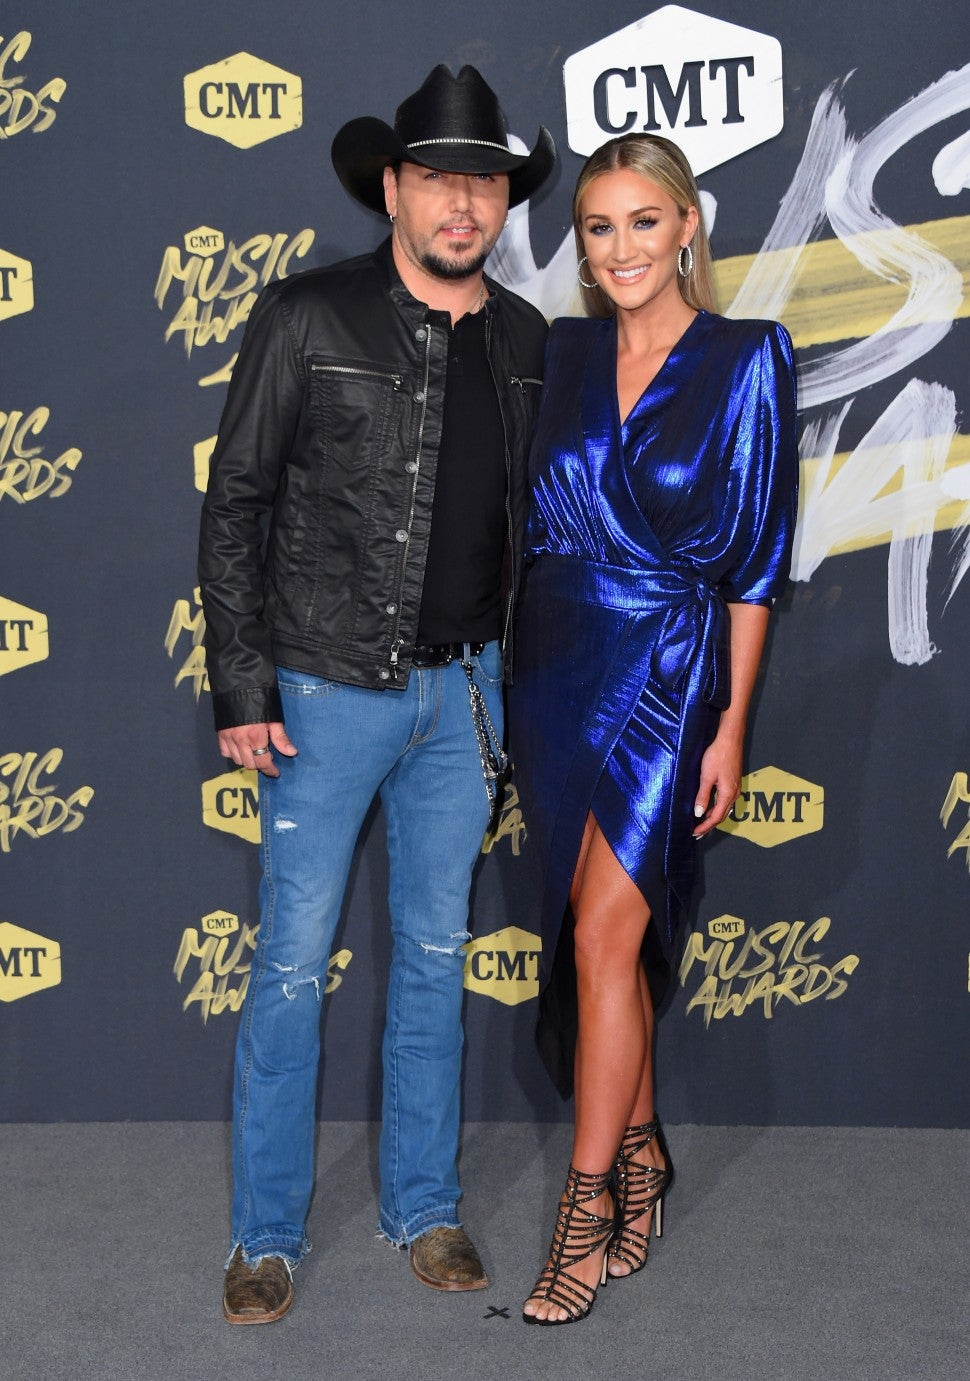 Jason Aldean and Brittany Kerr at 2018 cmt music awards